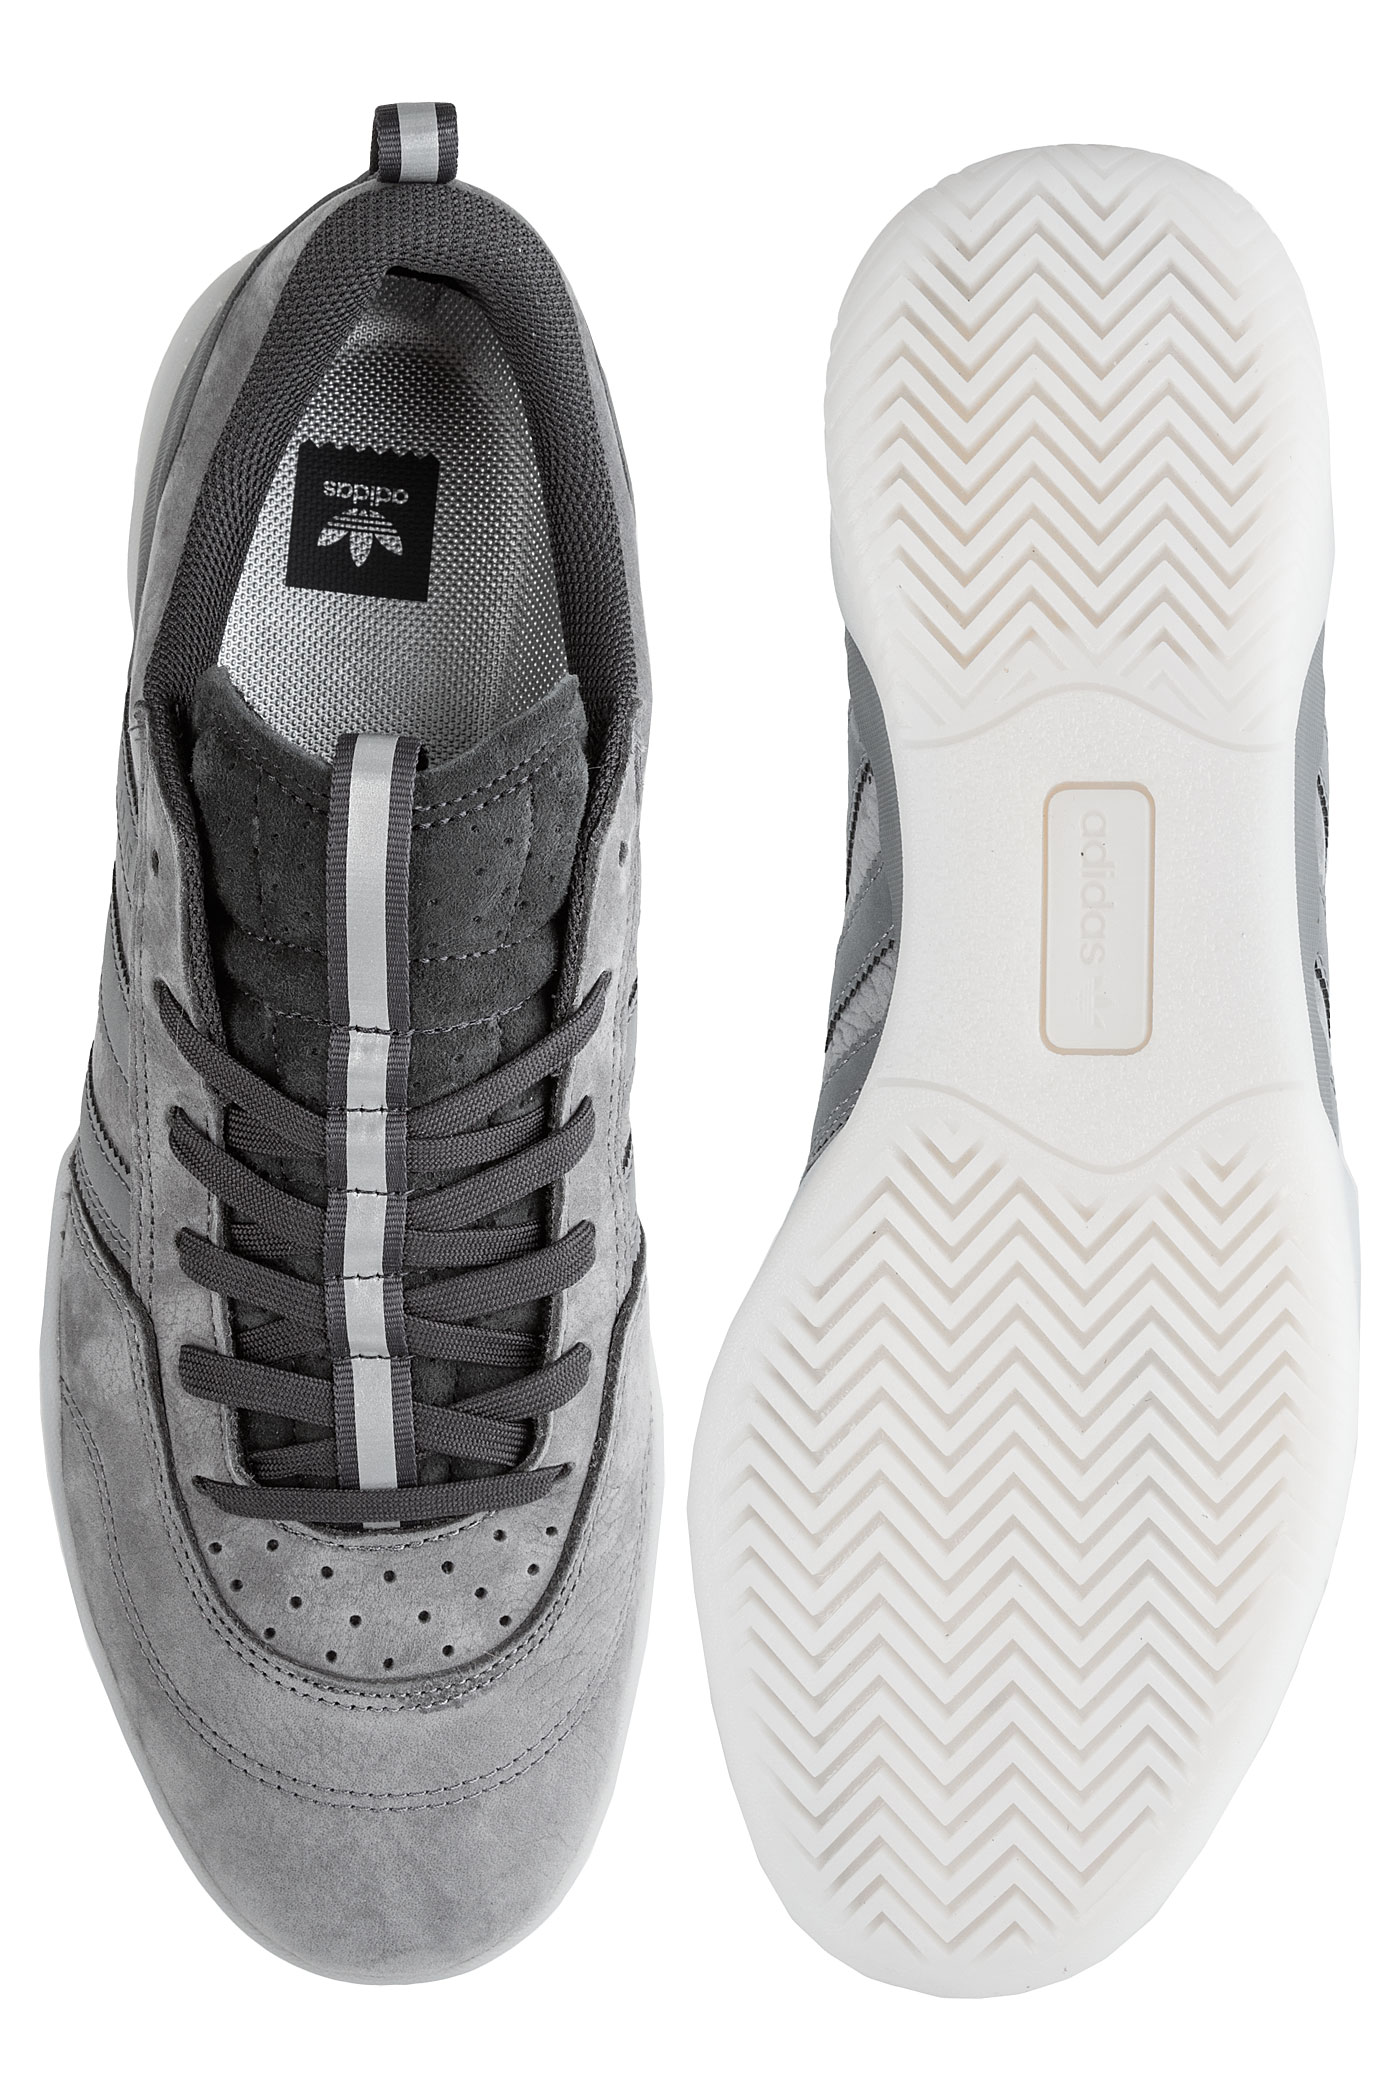 Five X Chaussuregrey One Adidas Cup City Carbon Numbers Grey xeCdBro